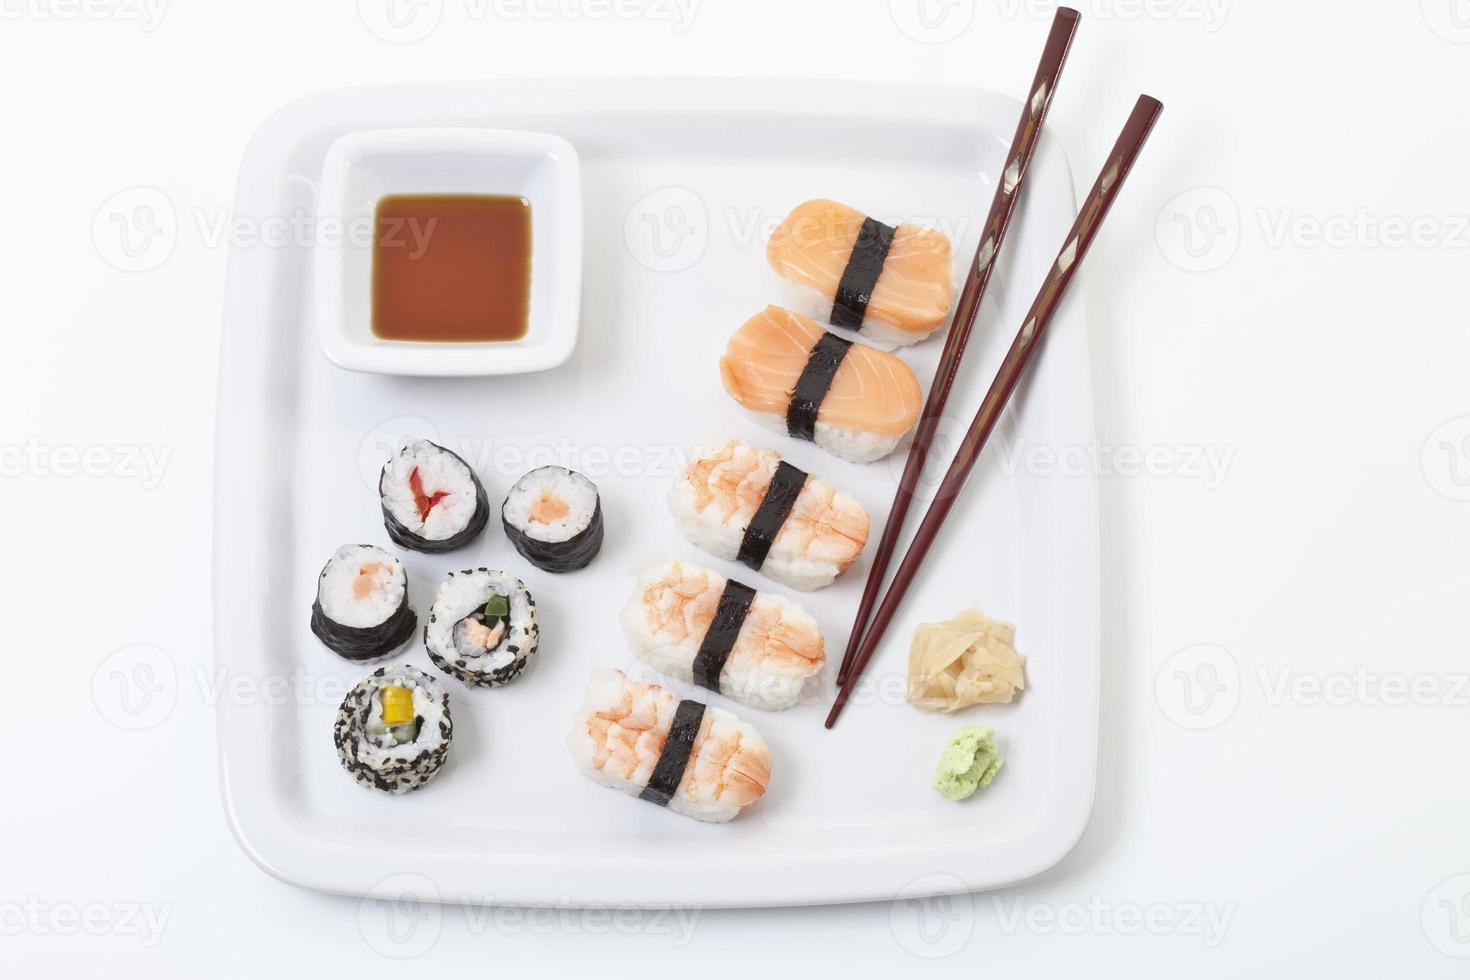 Maki sushi in plate, elevated view photo